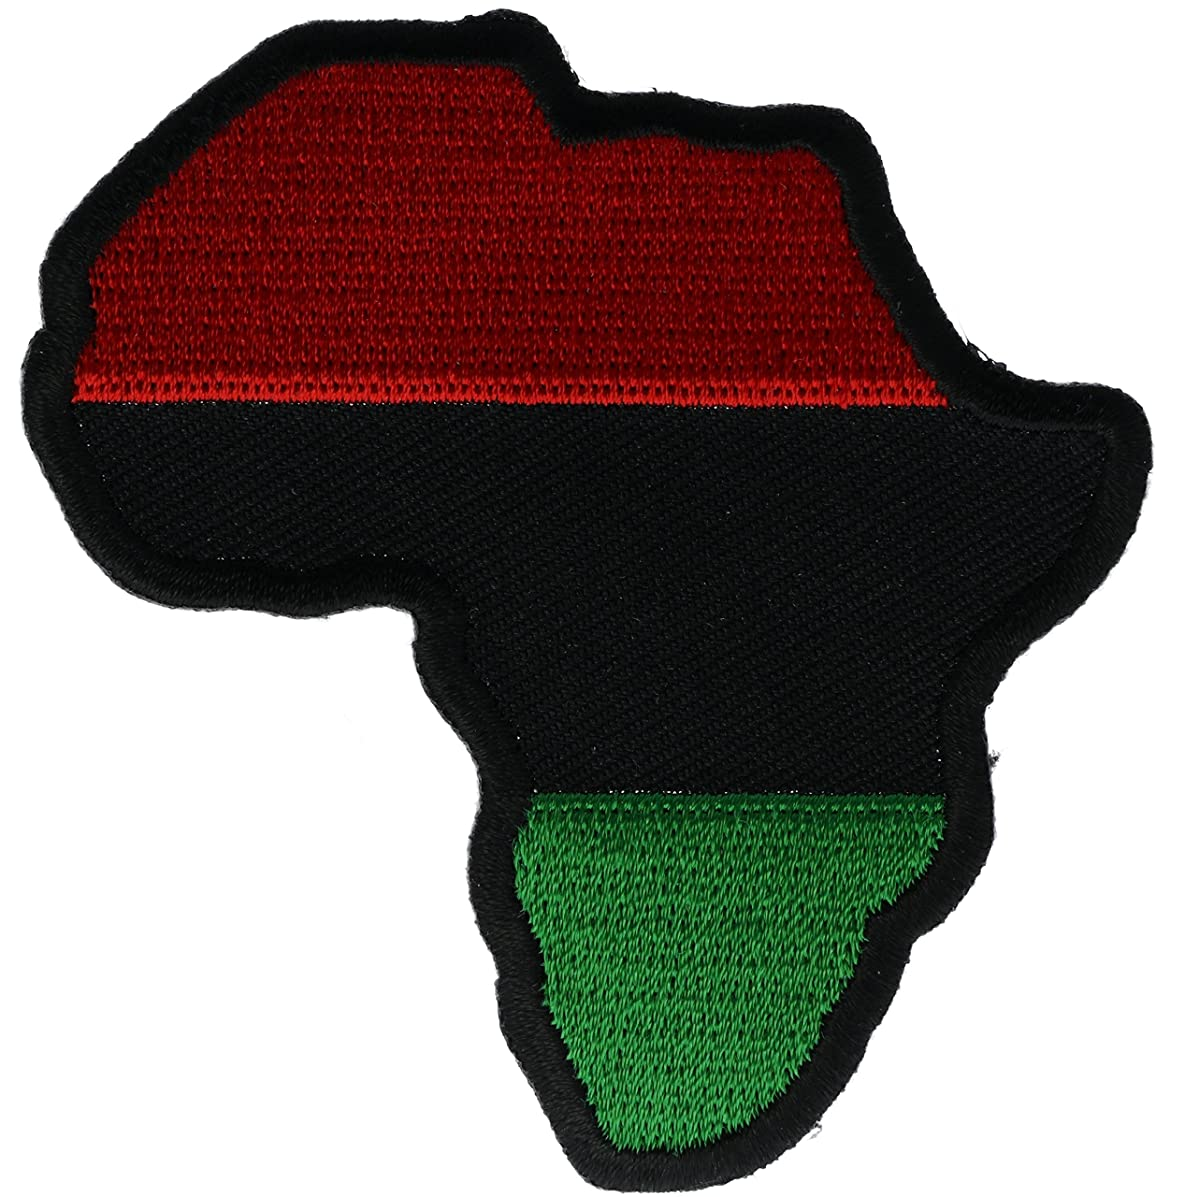 Pan Africa African Red Black Green Continent Cutout 3 inch Patch IVANP1527